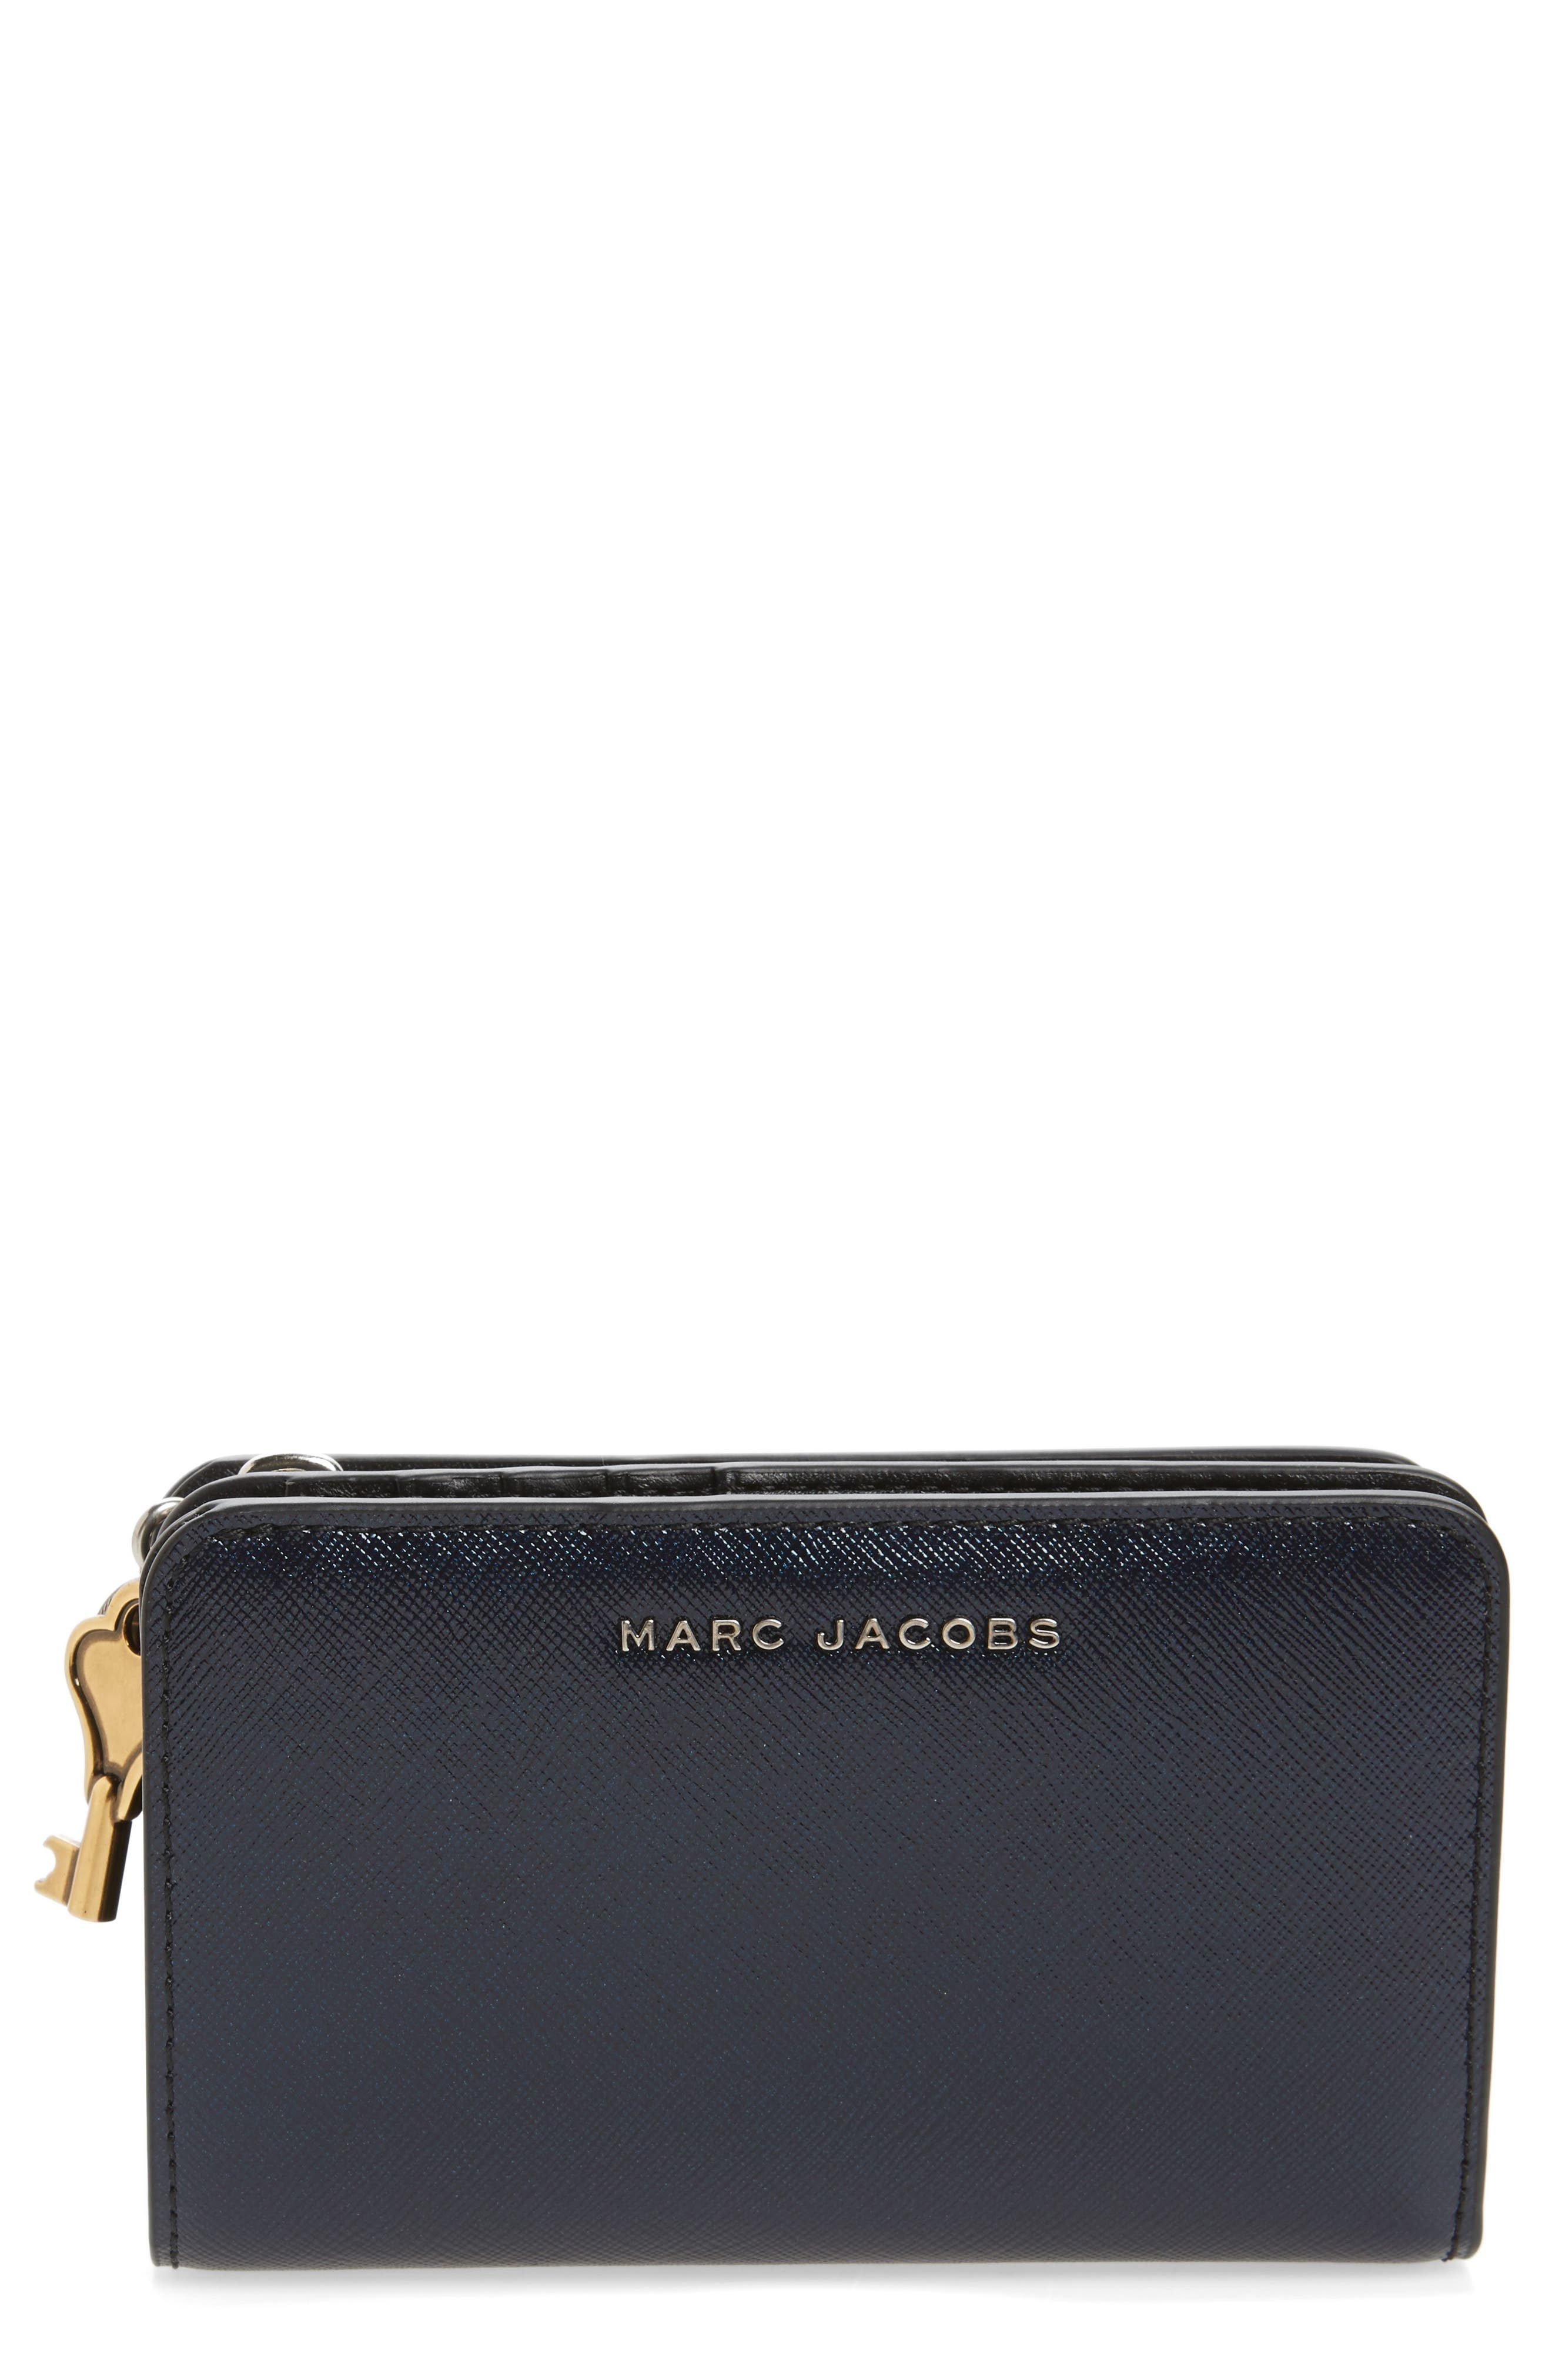 Saffiano Leather Compact Wallet,                         Main,                         color,